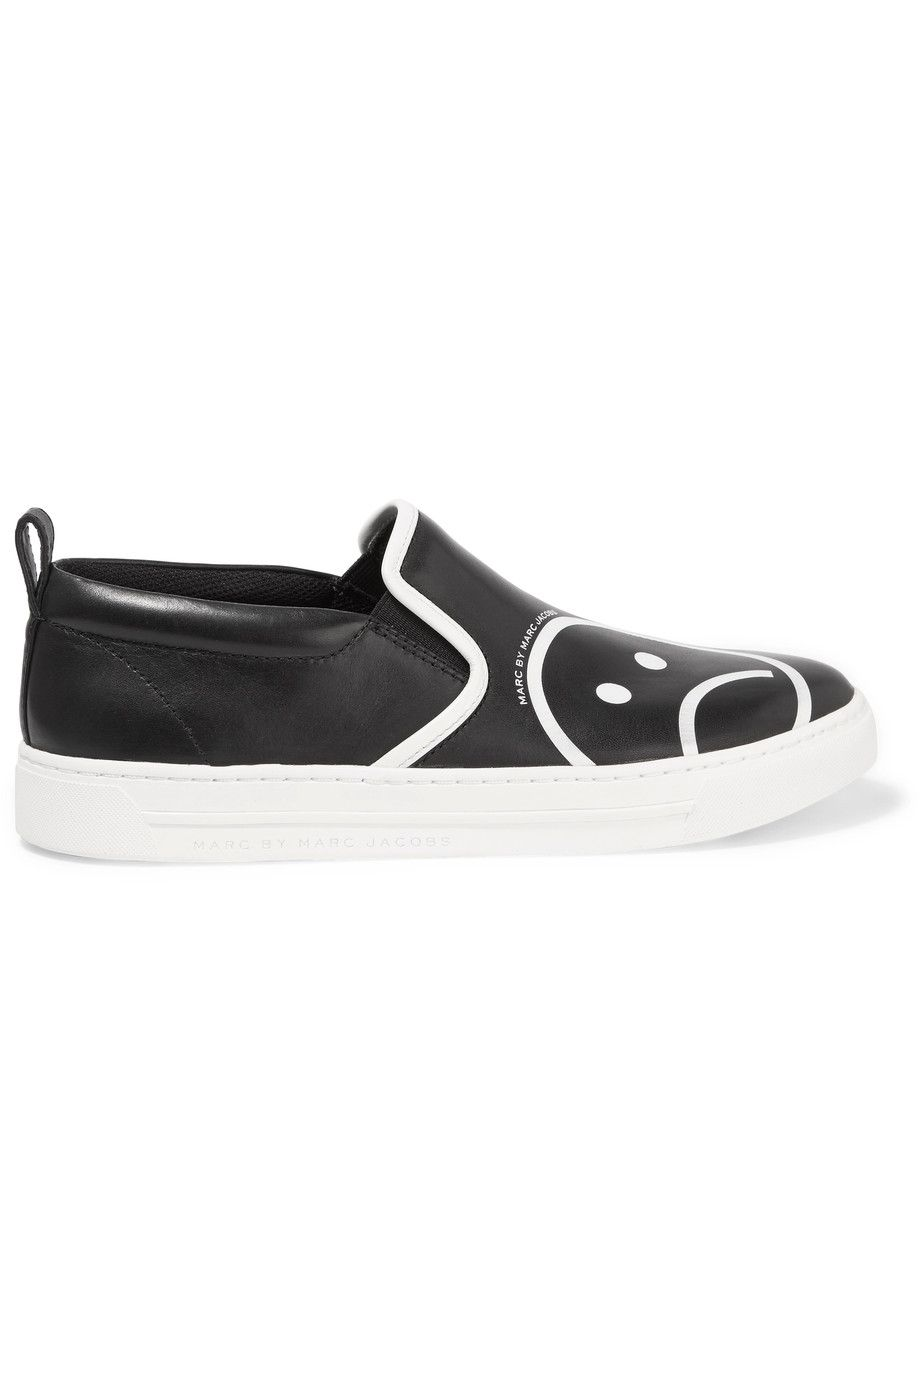 MARC BY MARC JACOBS Broome printed leather slip on sneakers.  #marcbymarcjacobs #shoes #